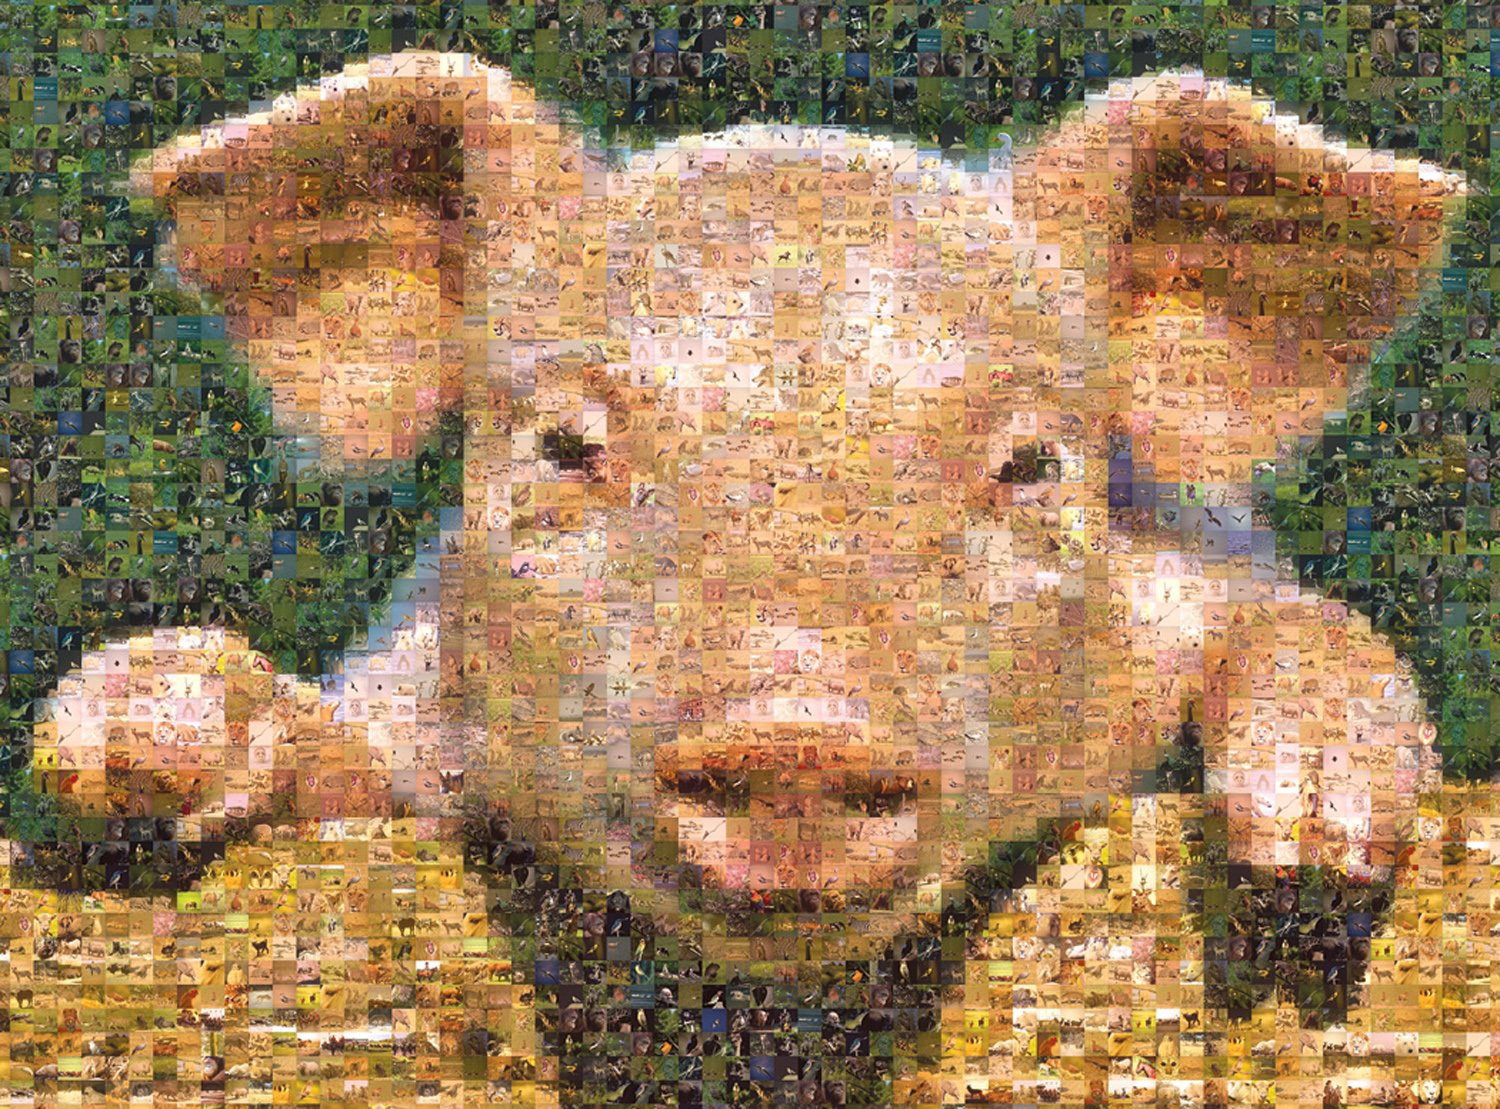 Buffalo Games Photomosaic, Pig - 1000pc Jigsaw Puzzle by Buffalo Games (Image #2)